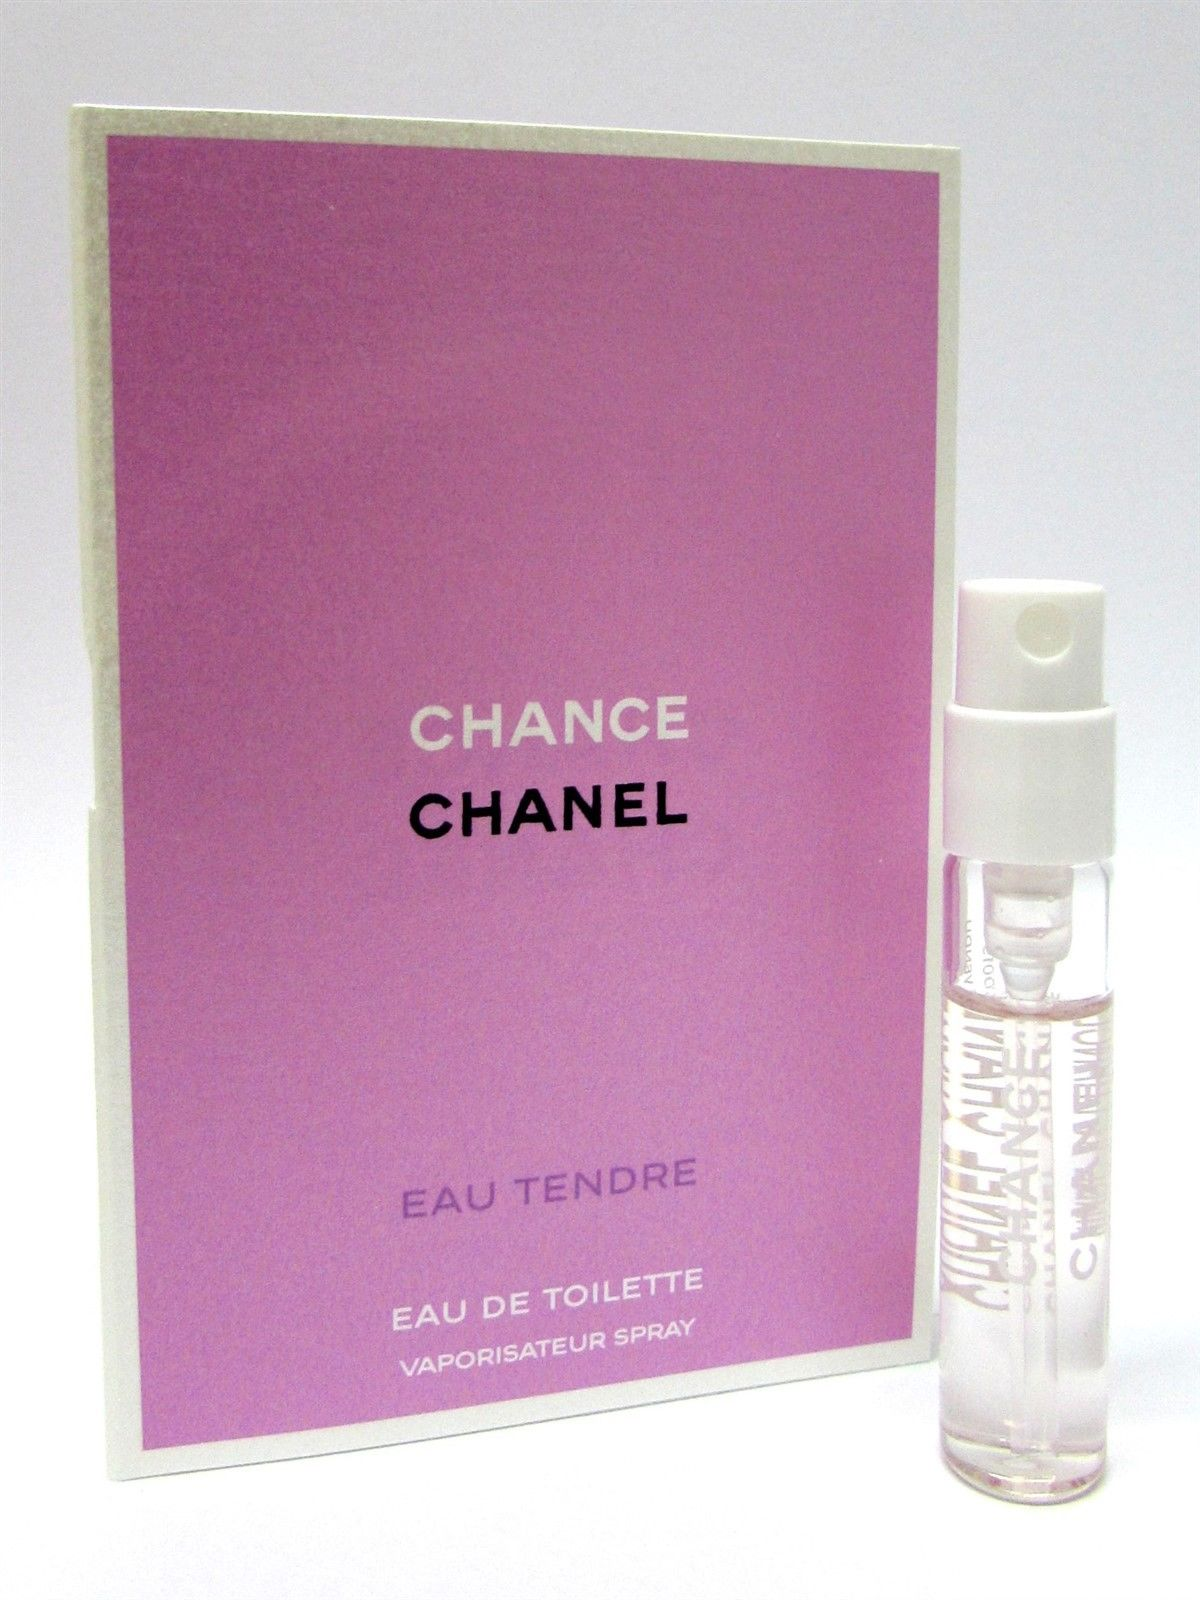 Chanel Chance Eau Tendre W EDT 2ml